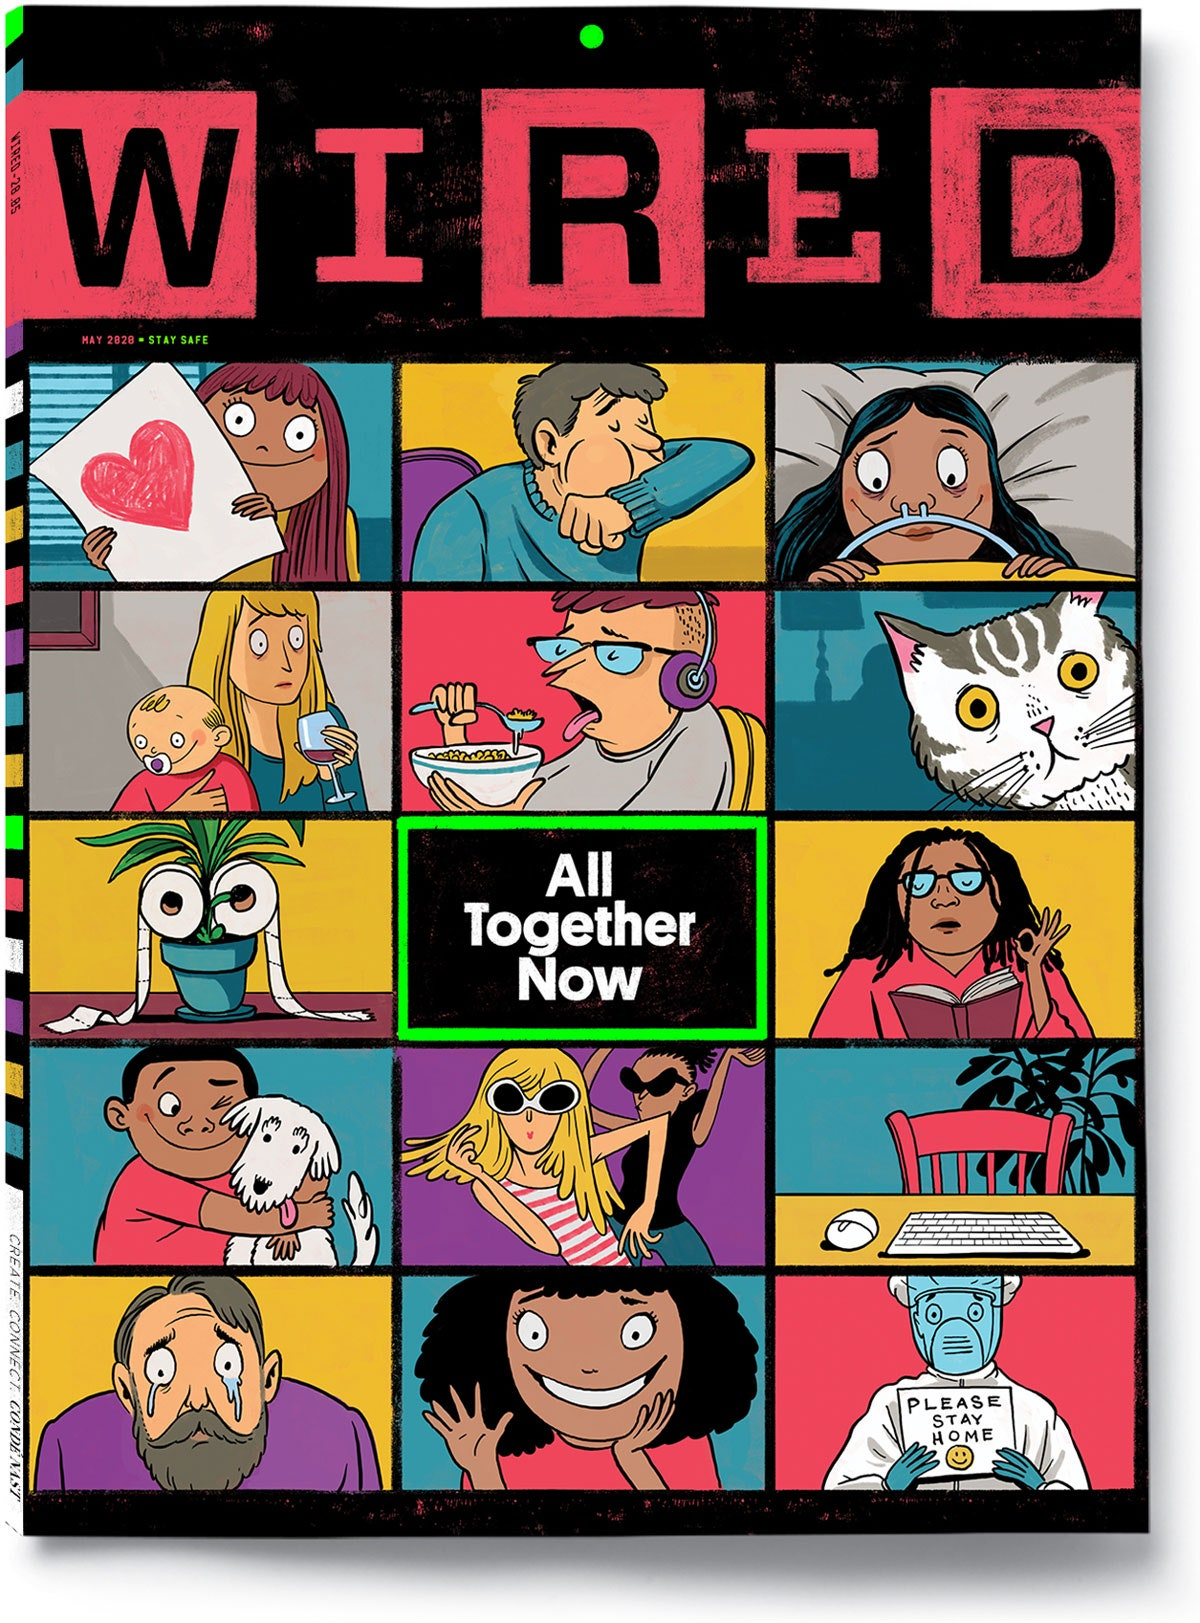 WIRED 28.05 May 2020 Issue cover with words All Together Now in grid of faces